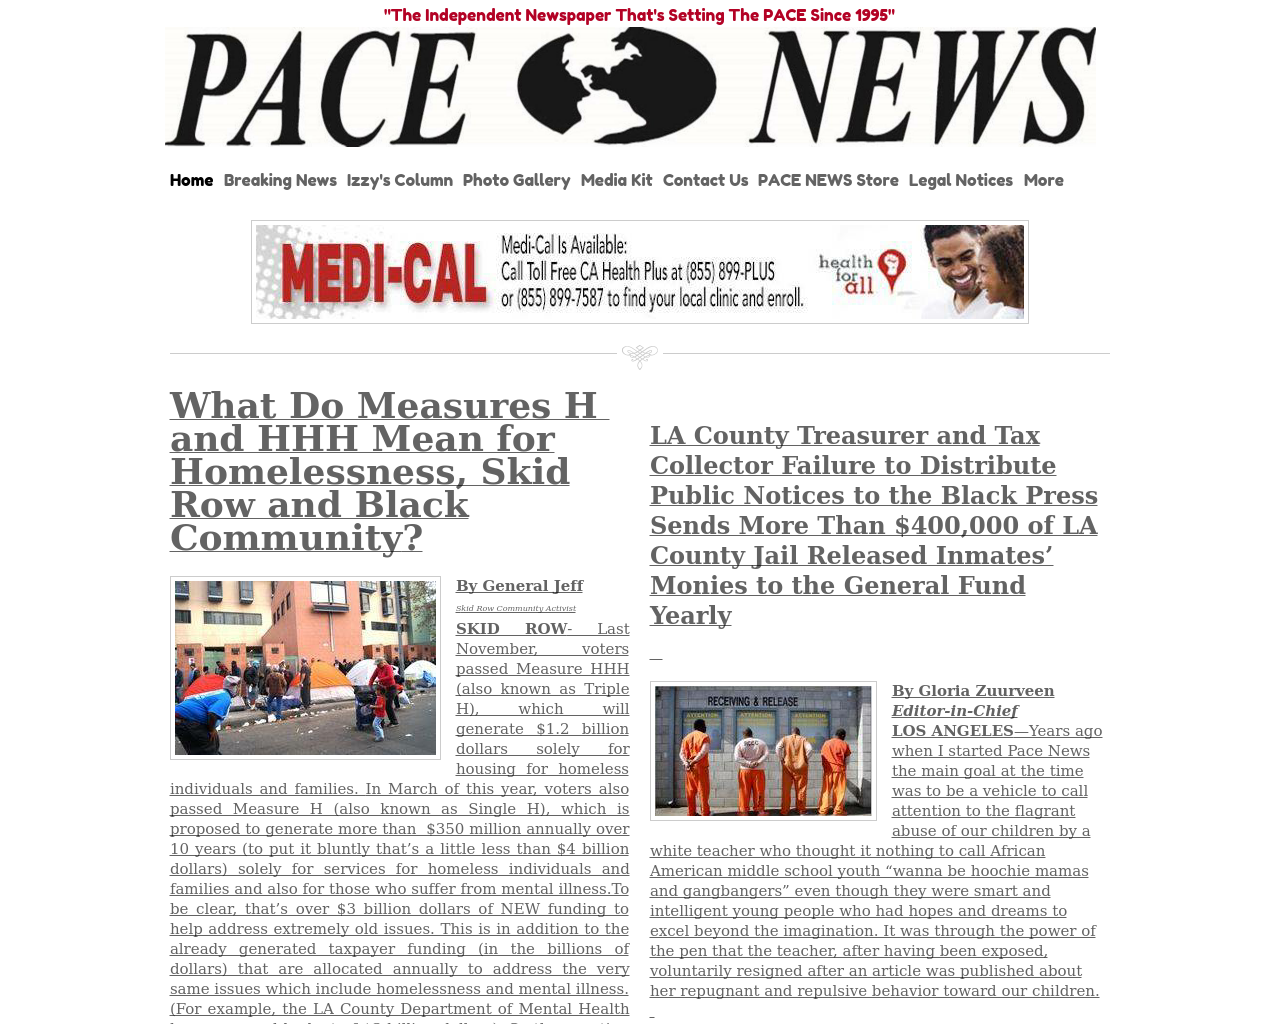 PACE-NEWS-Advertising-Reviews-Pricing